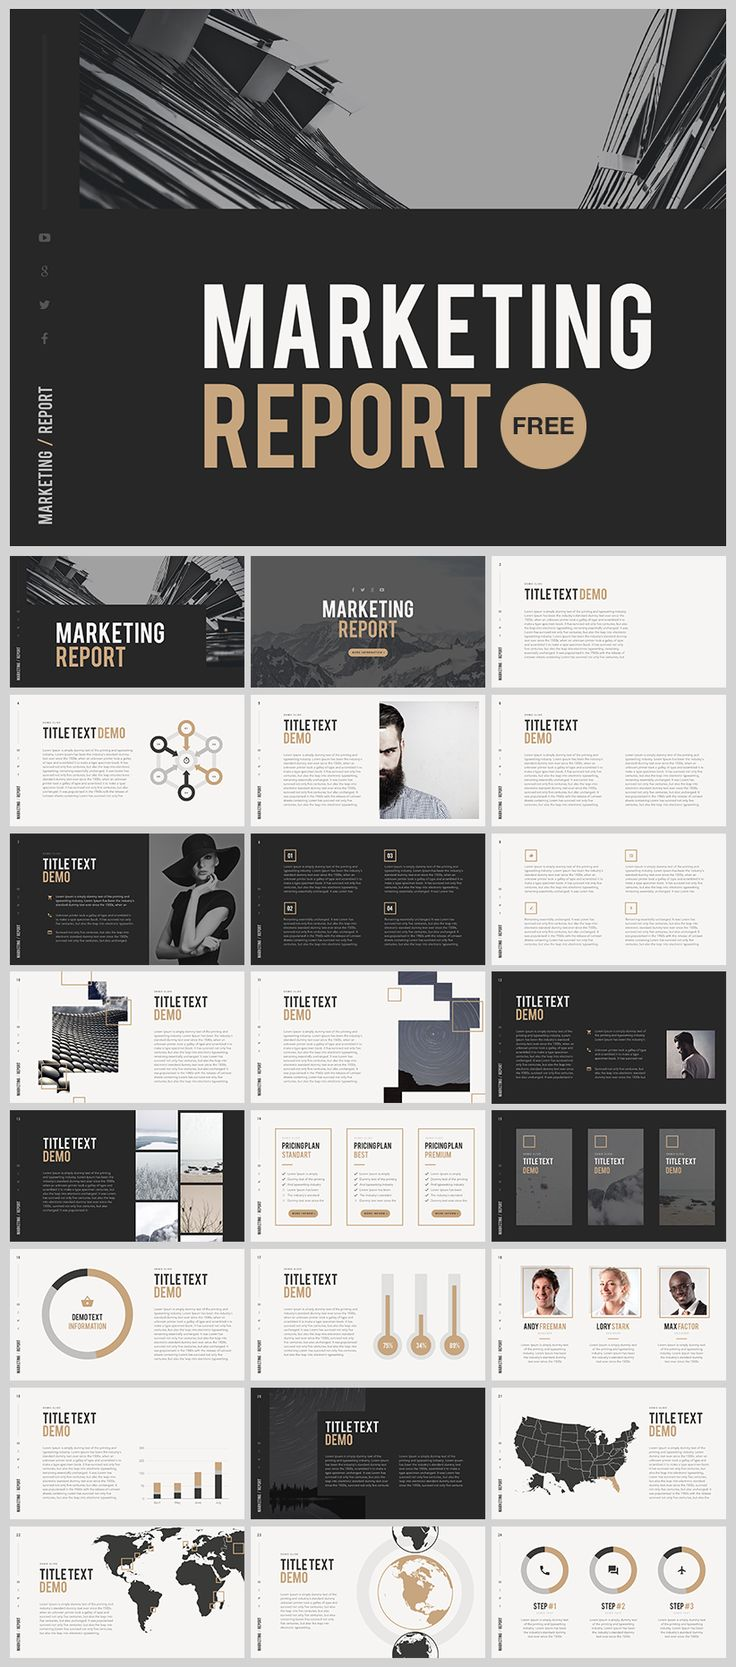 40 best free powerpoint template images on pinterest free stencils the marketing report free keynote template is designed to help at work more keynote templates for business and marketing toneelgroepblik Choice Image